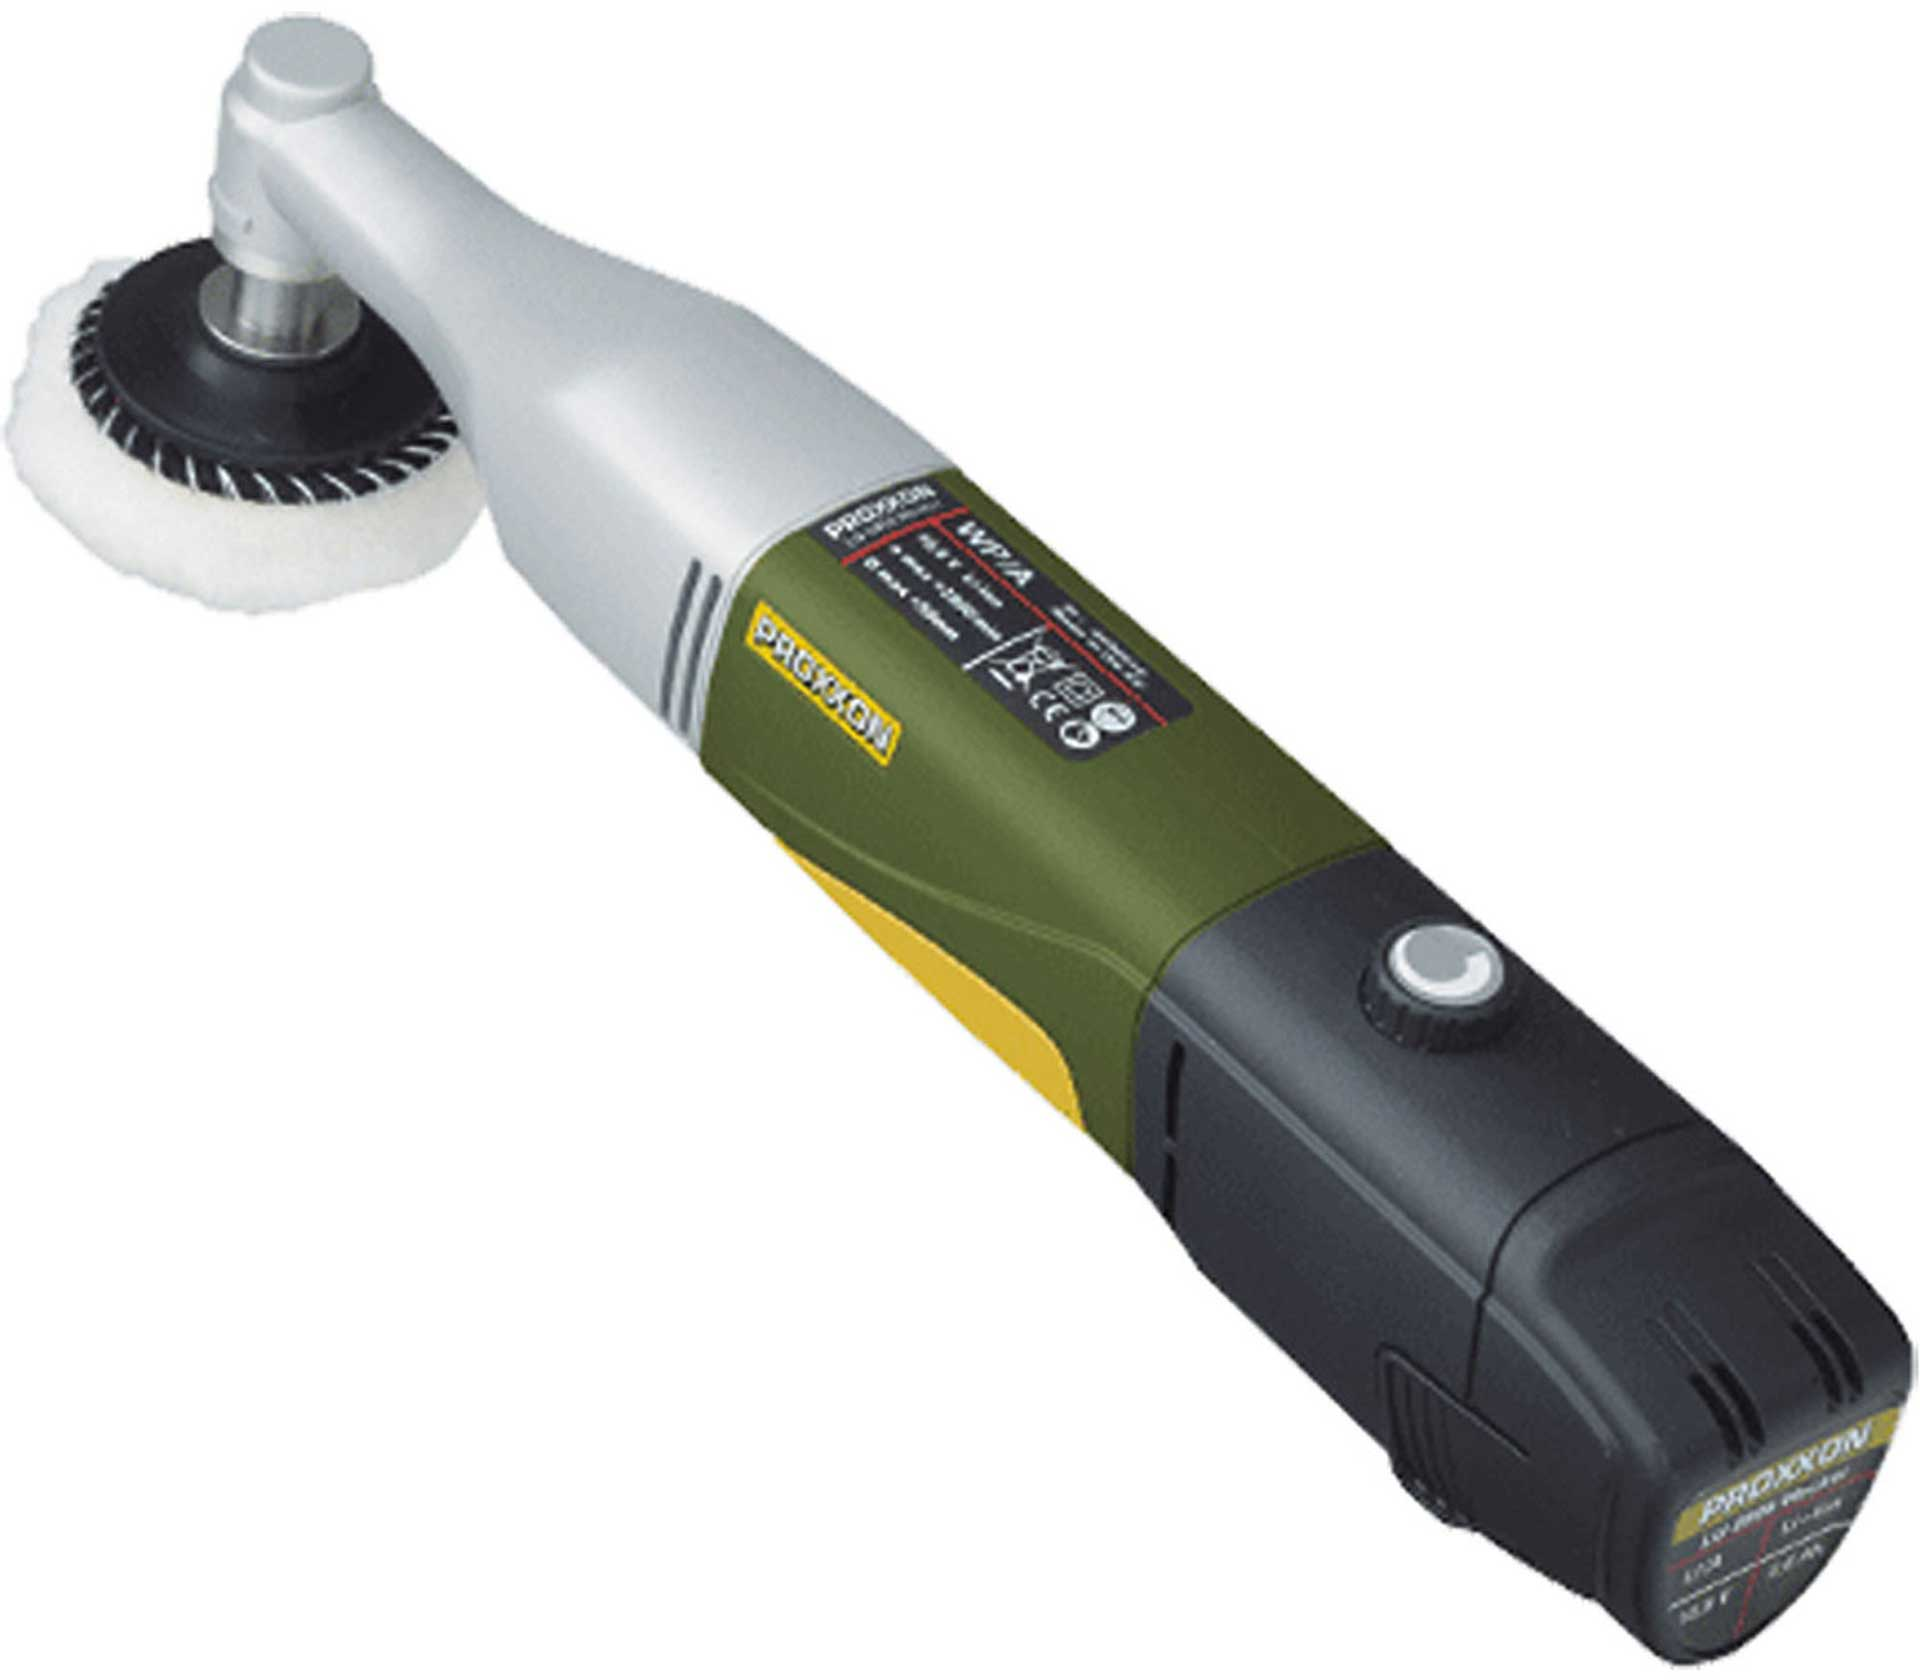 PROXXON BATTERY-OPERATED ANGLE POLISHER WP/A; IN QUICK CHARGER + LI-ION BATTERY